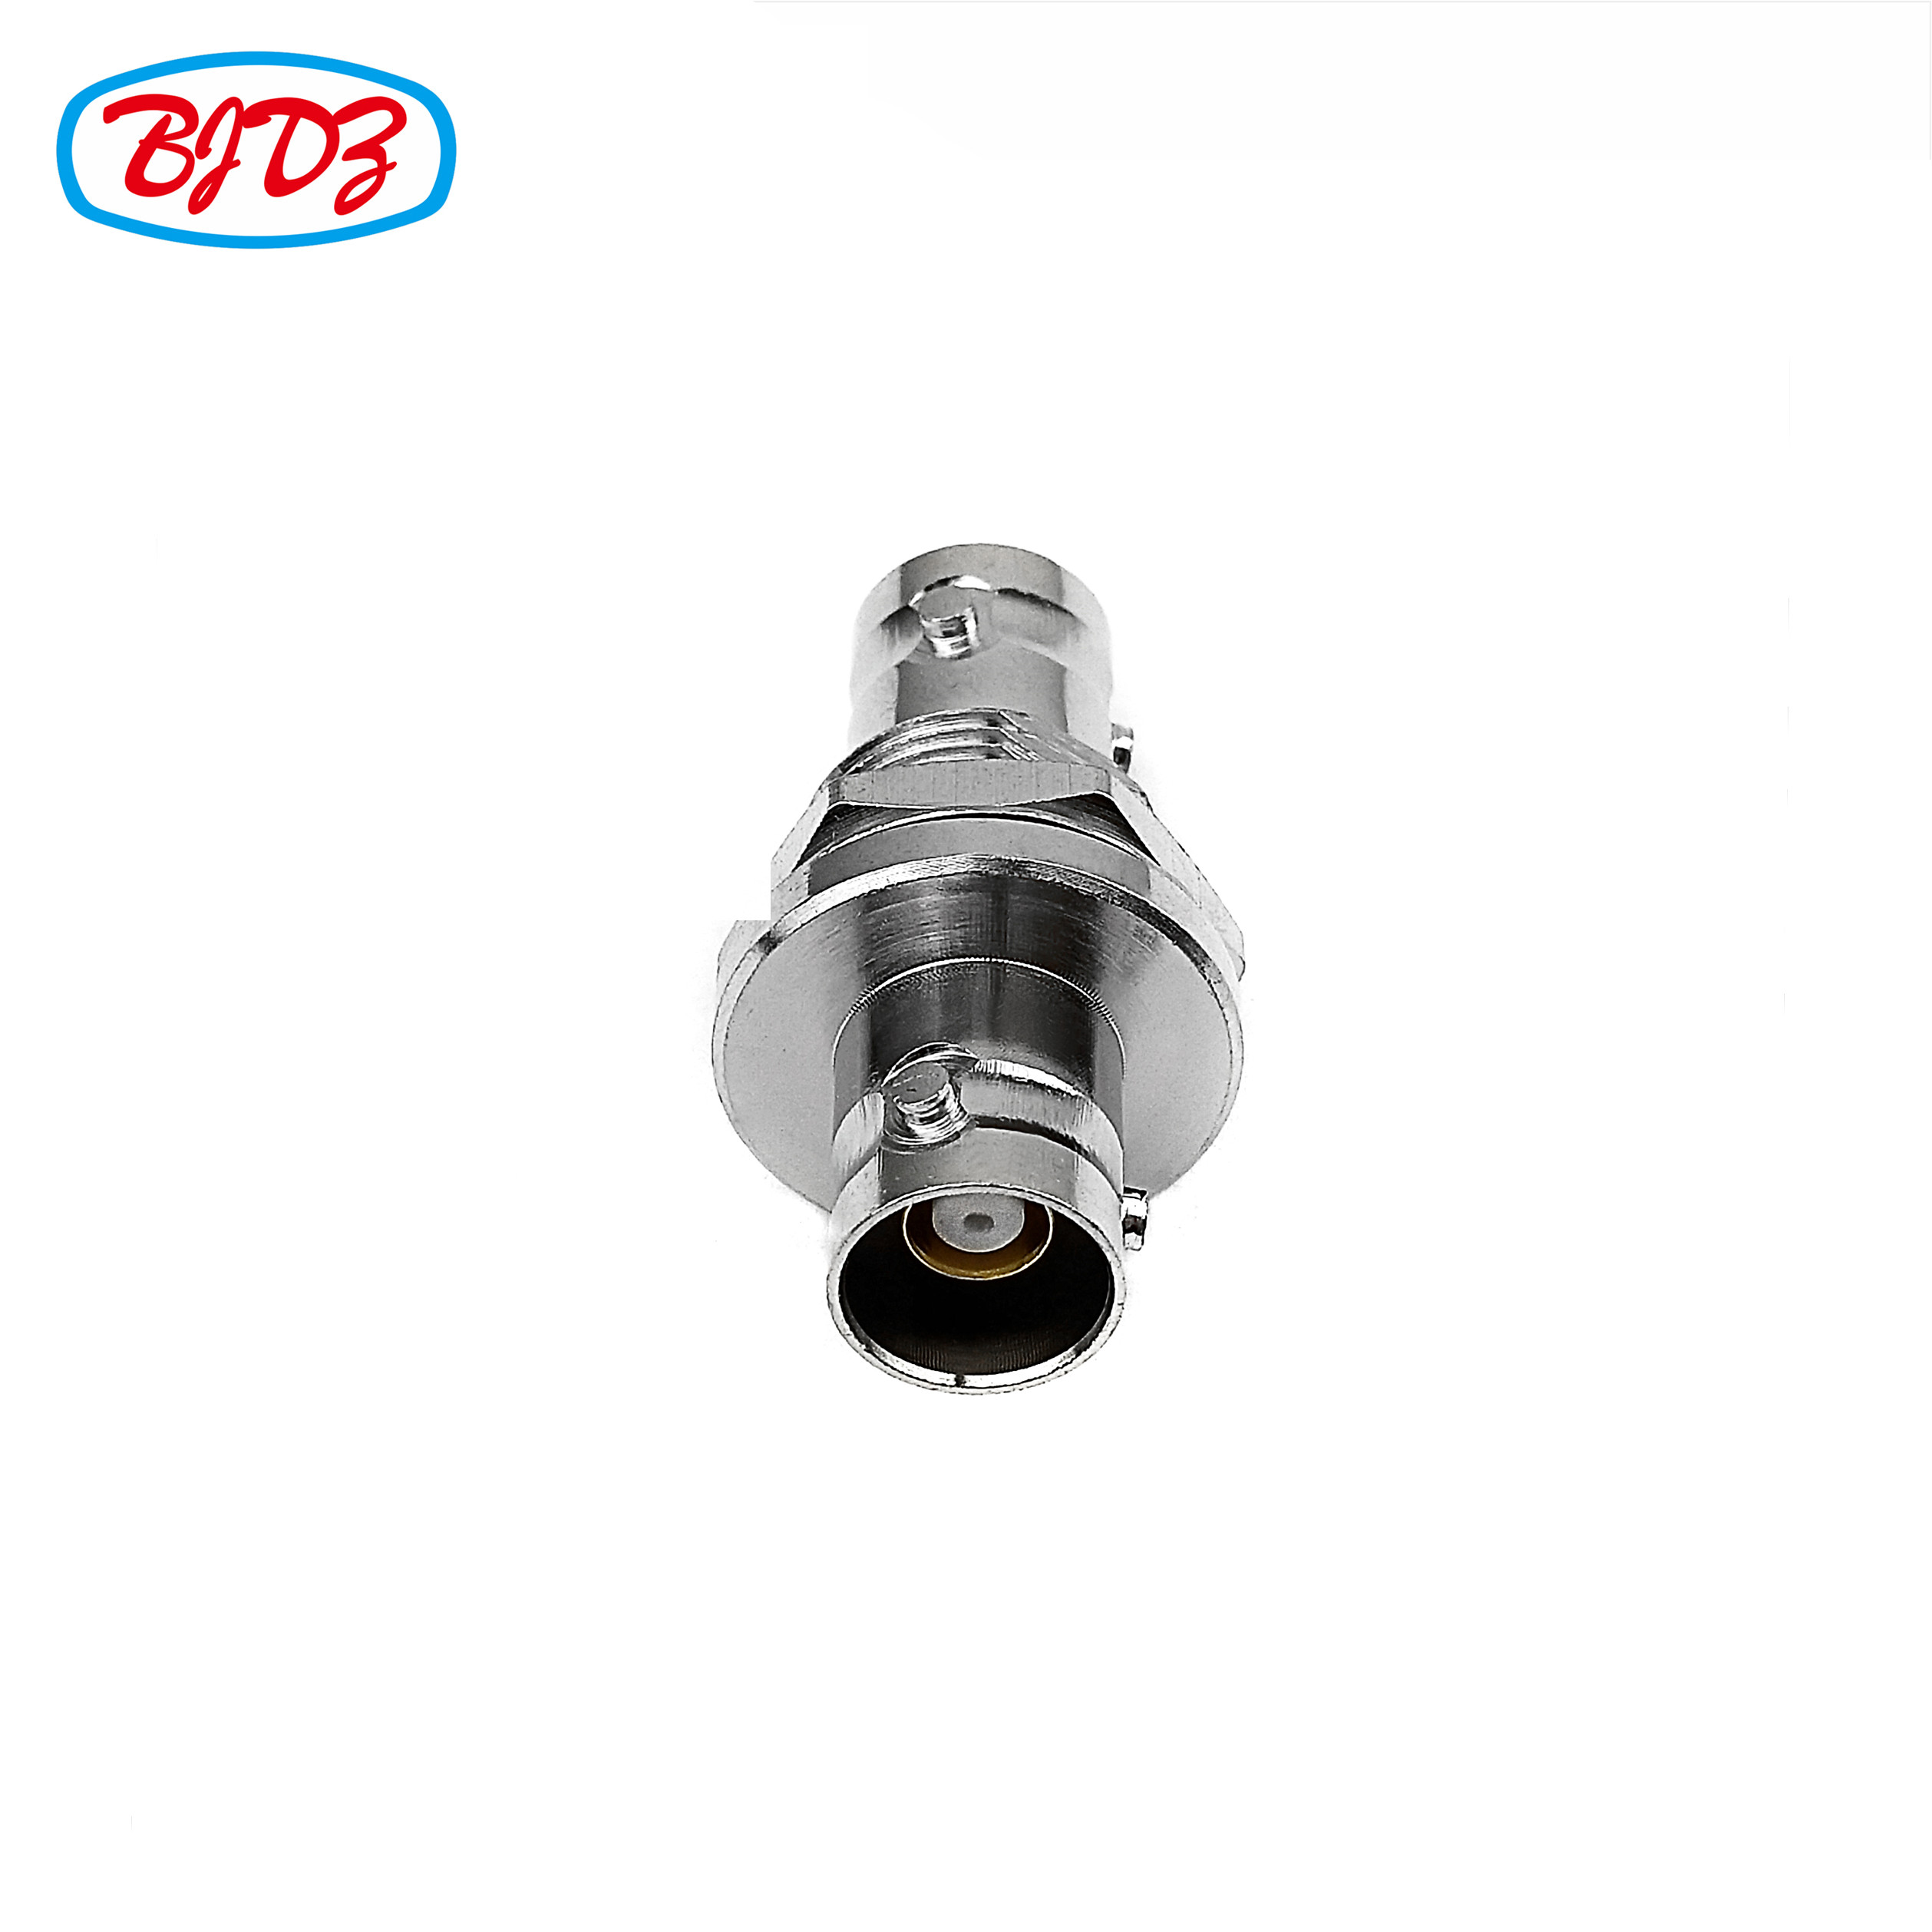 [Golden supplier] Triaxial RF adaptor BNC female to female cable 1553B Connector